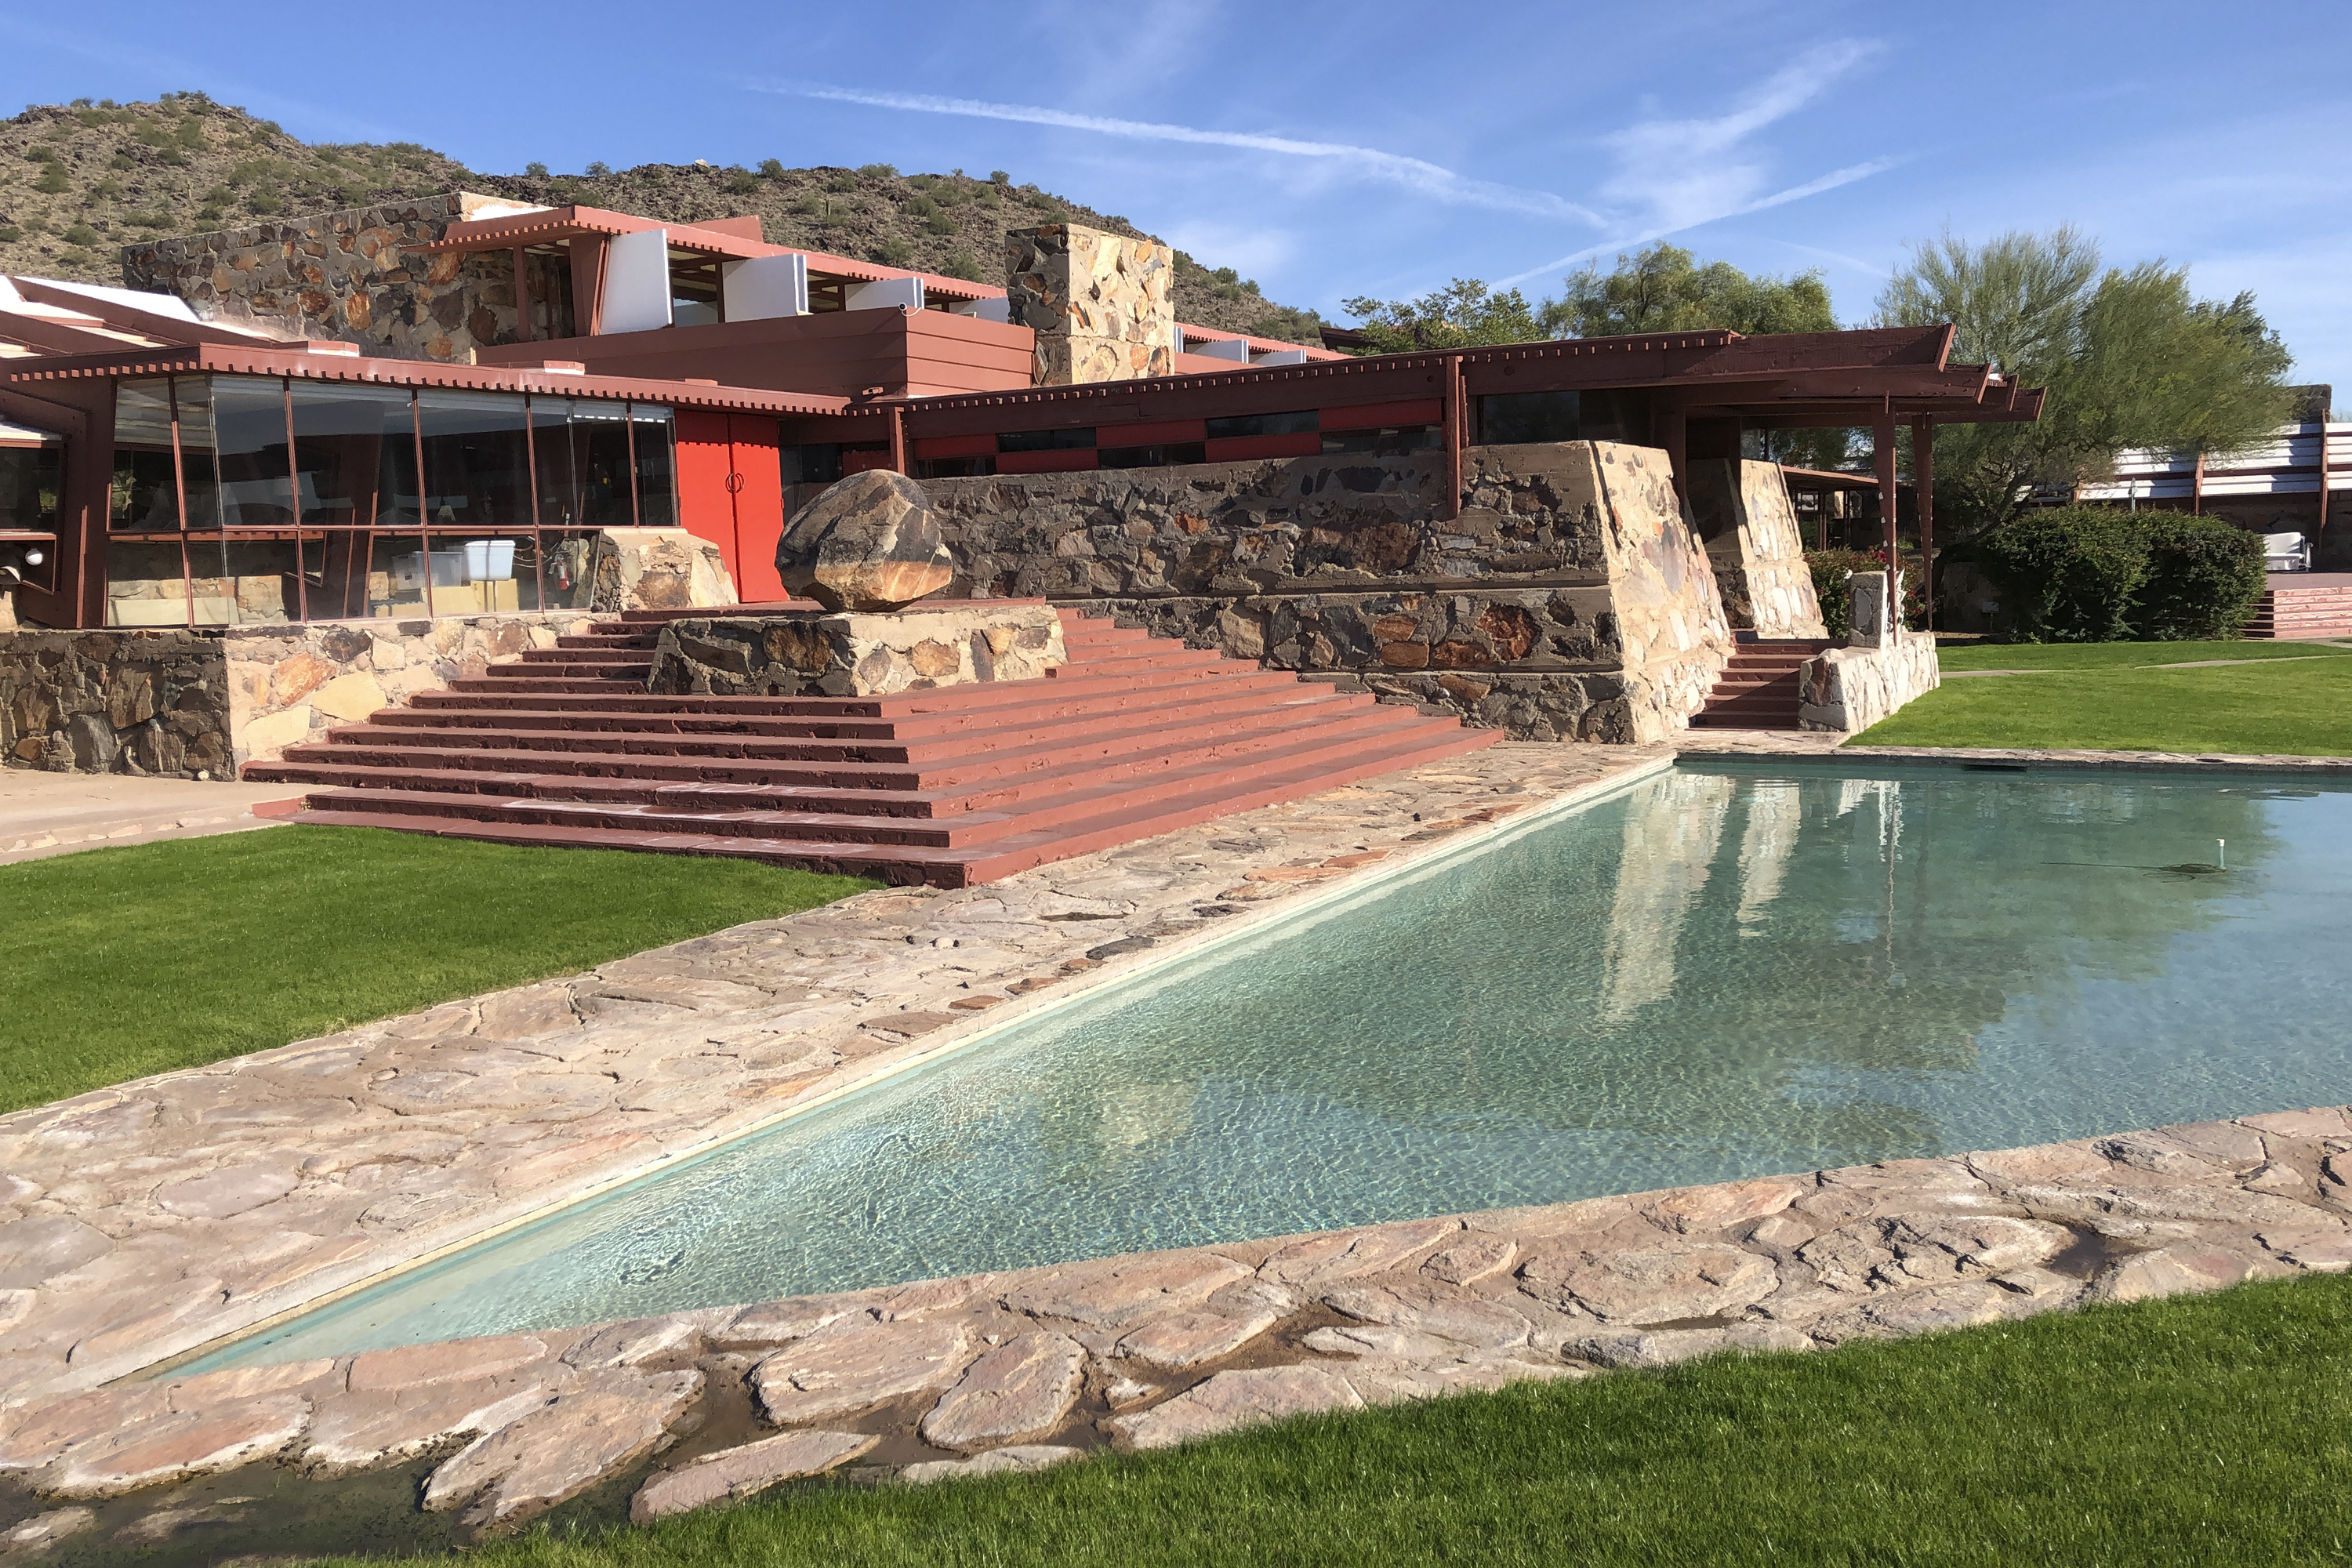 Frank Lloyd Wright's Taliesin West in Scottsdale, Arizona, is photographed in 2018.